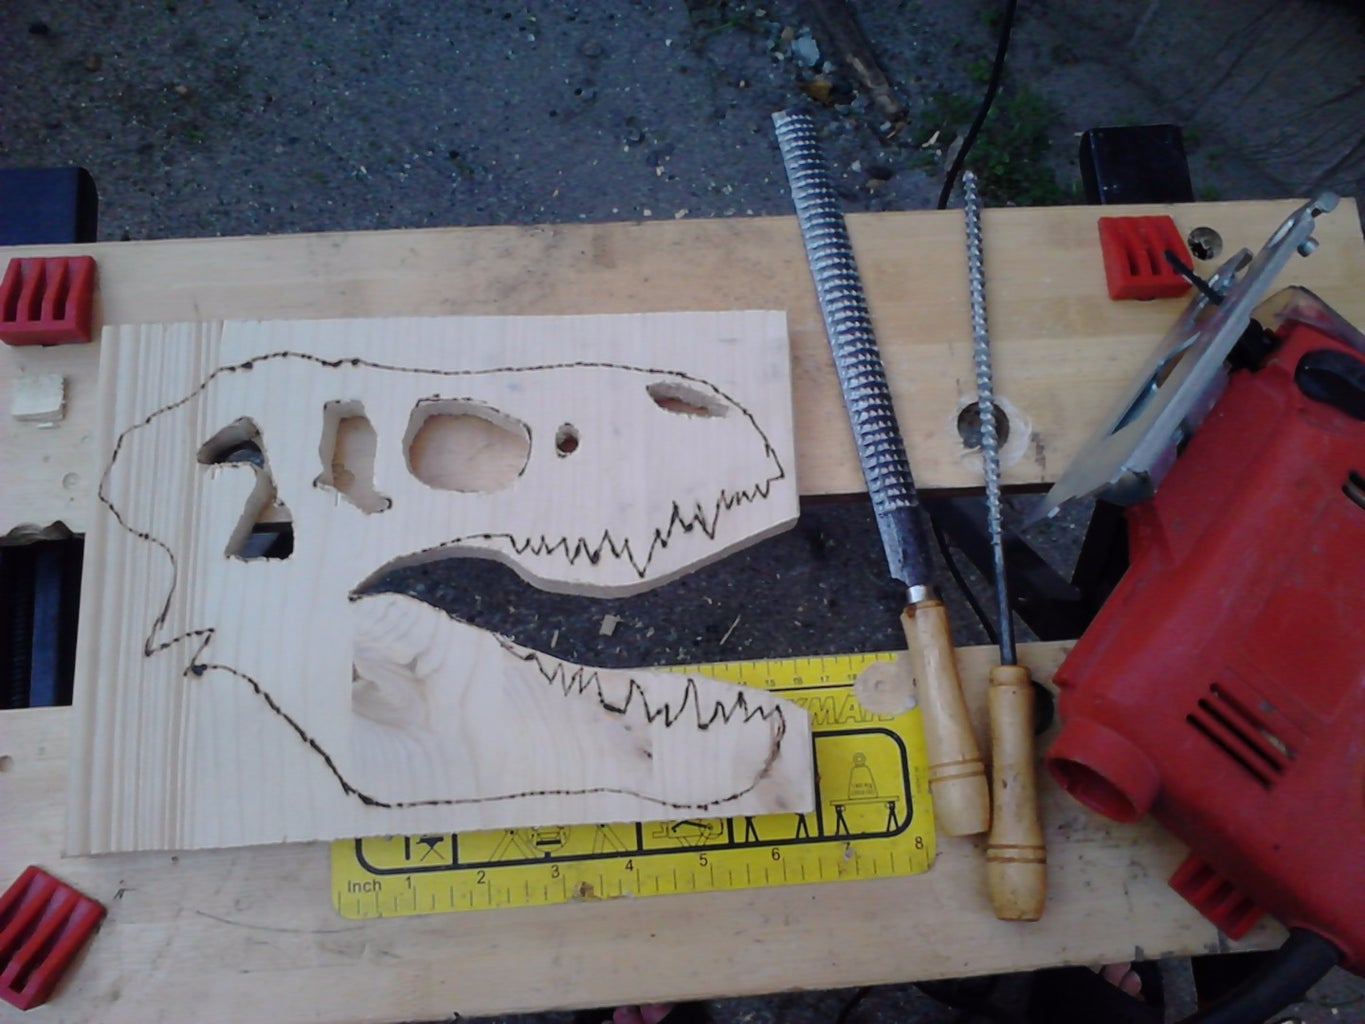 Cutting,drilling,filing,grinding...